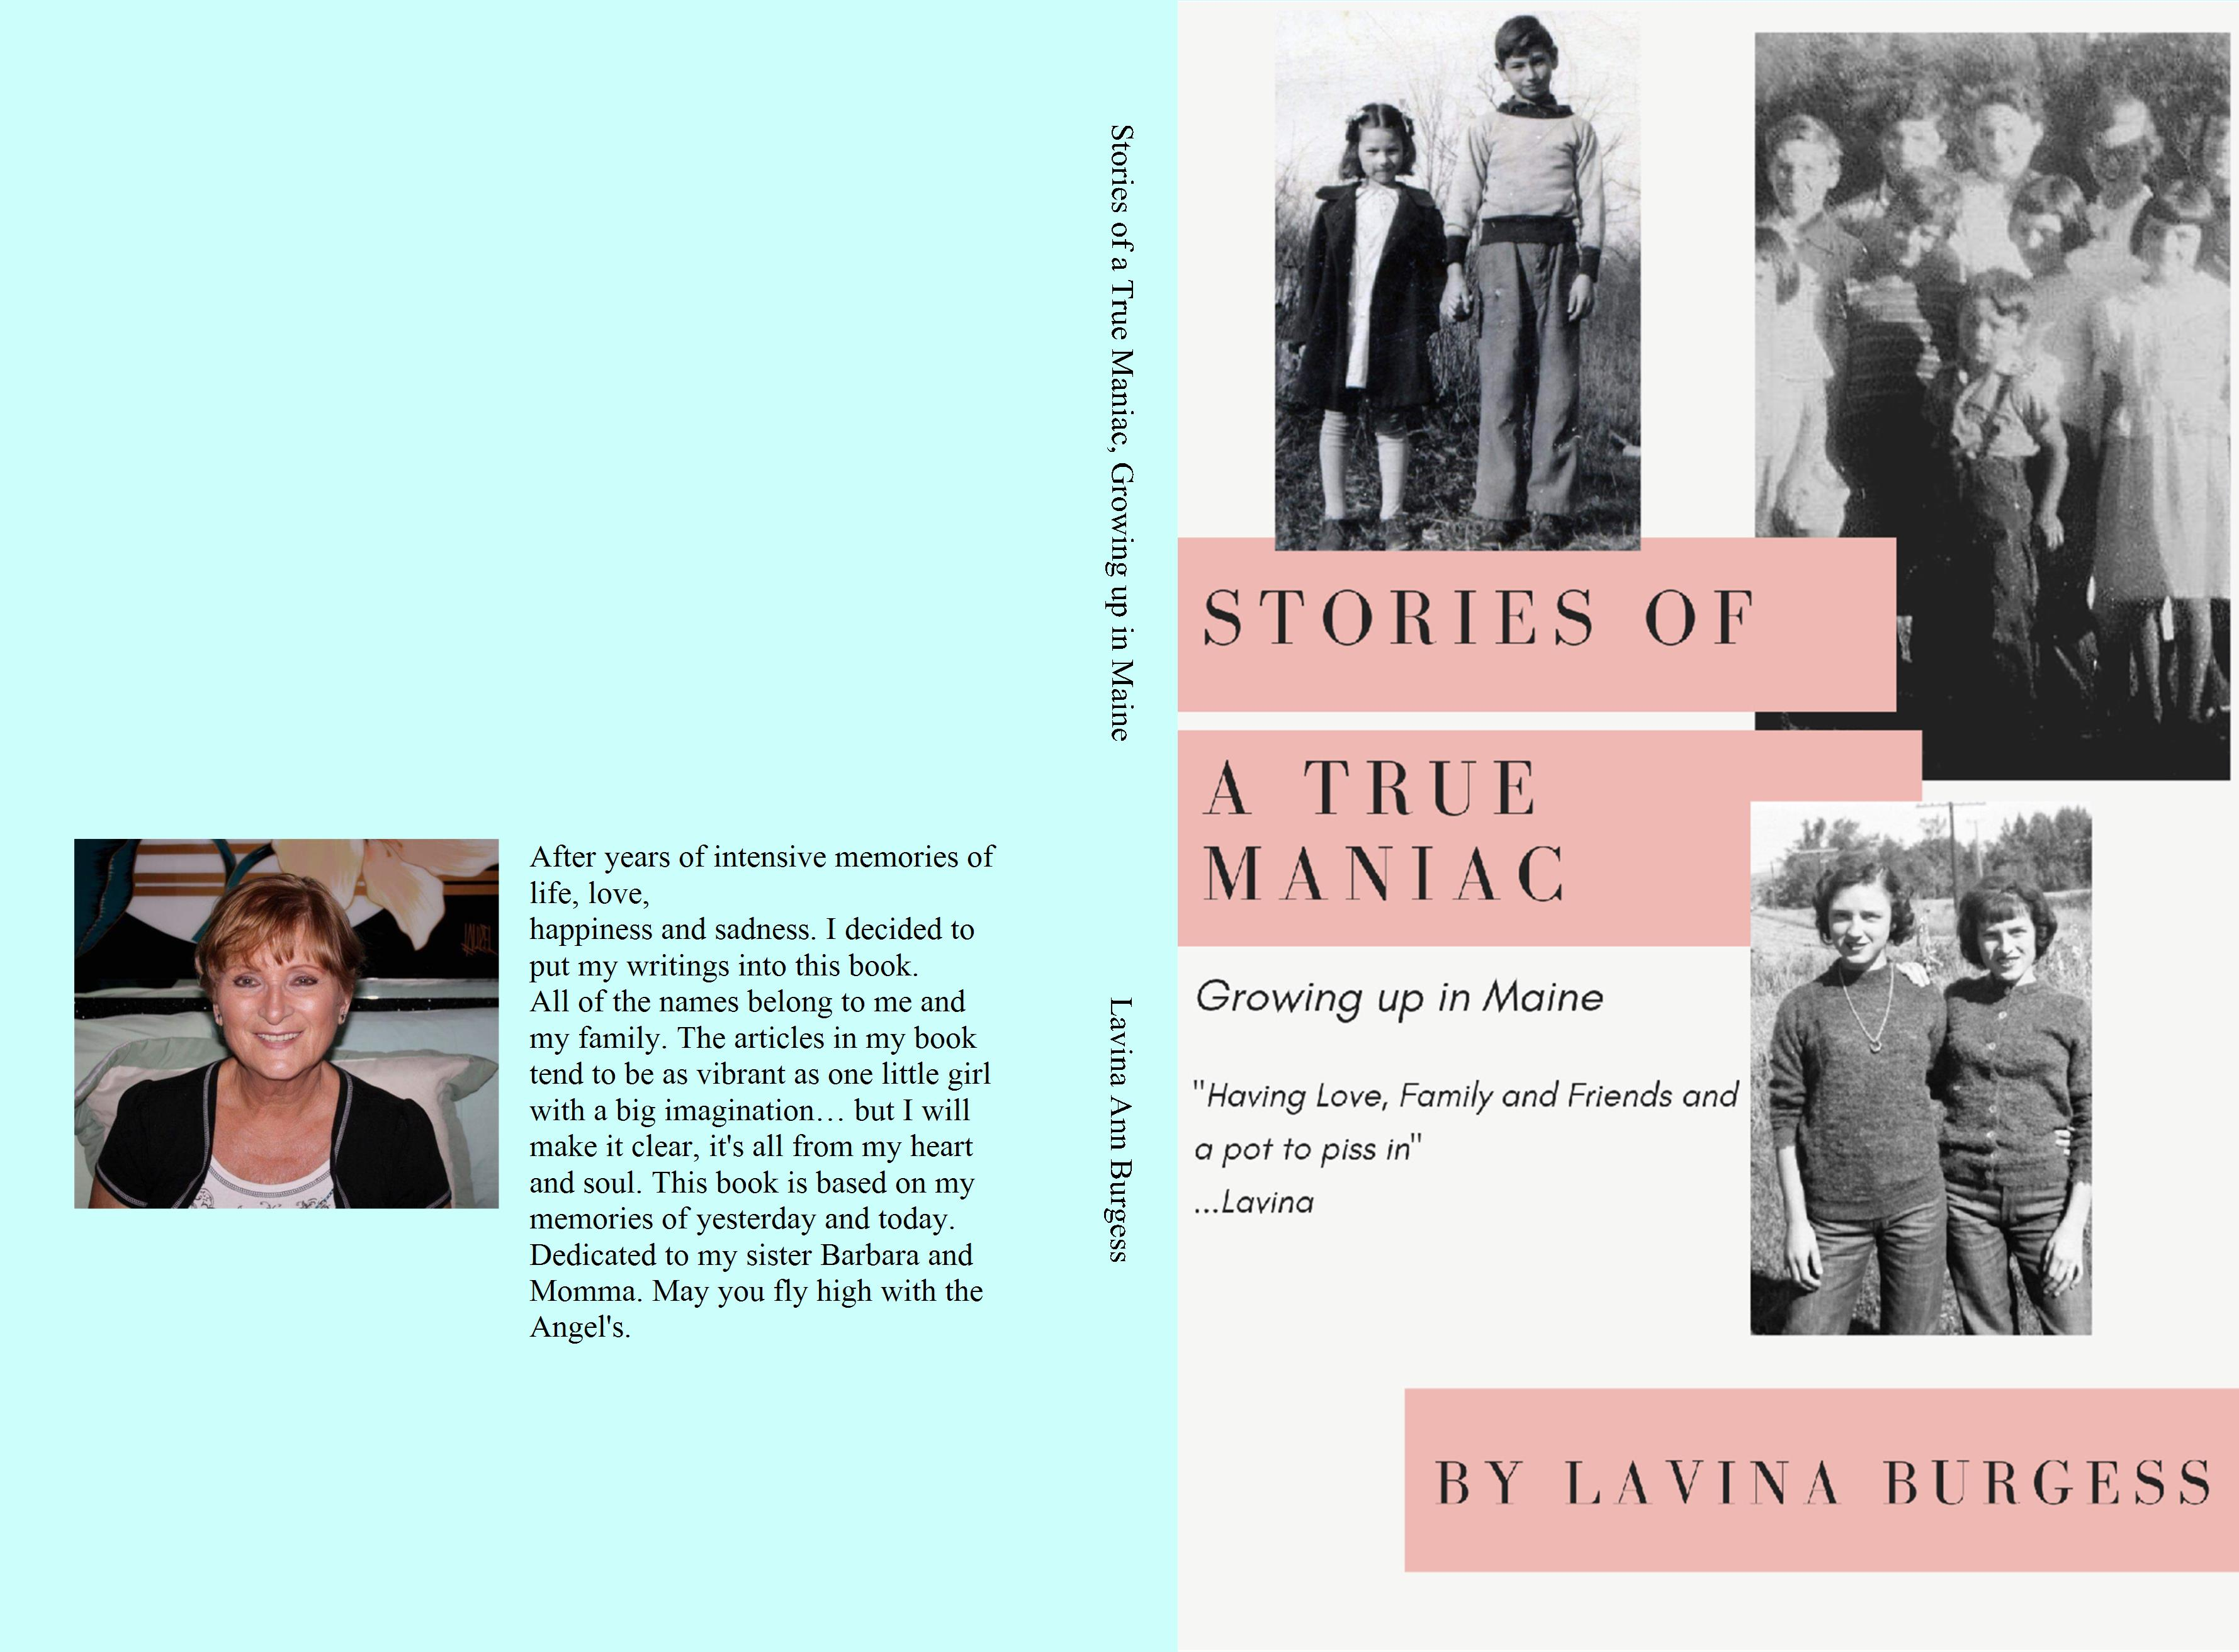 Stories from a True Maniac, Growing up in Maine cover image